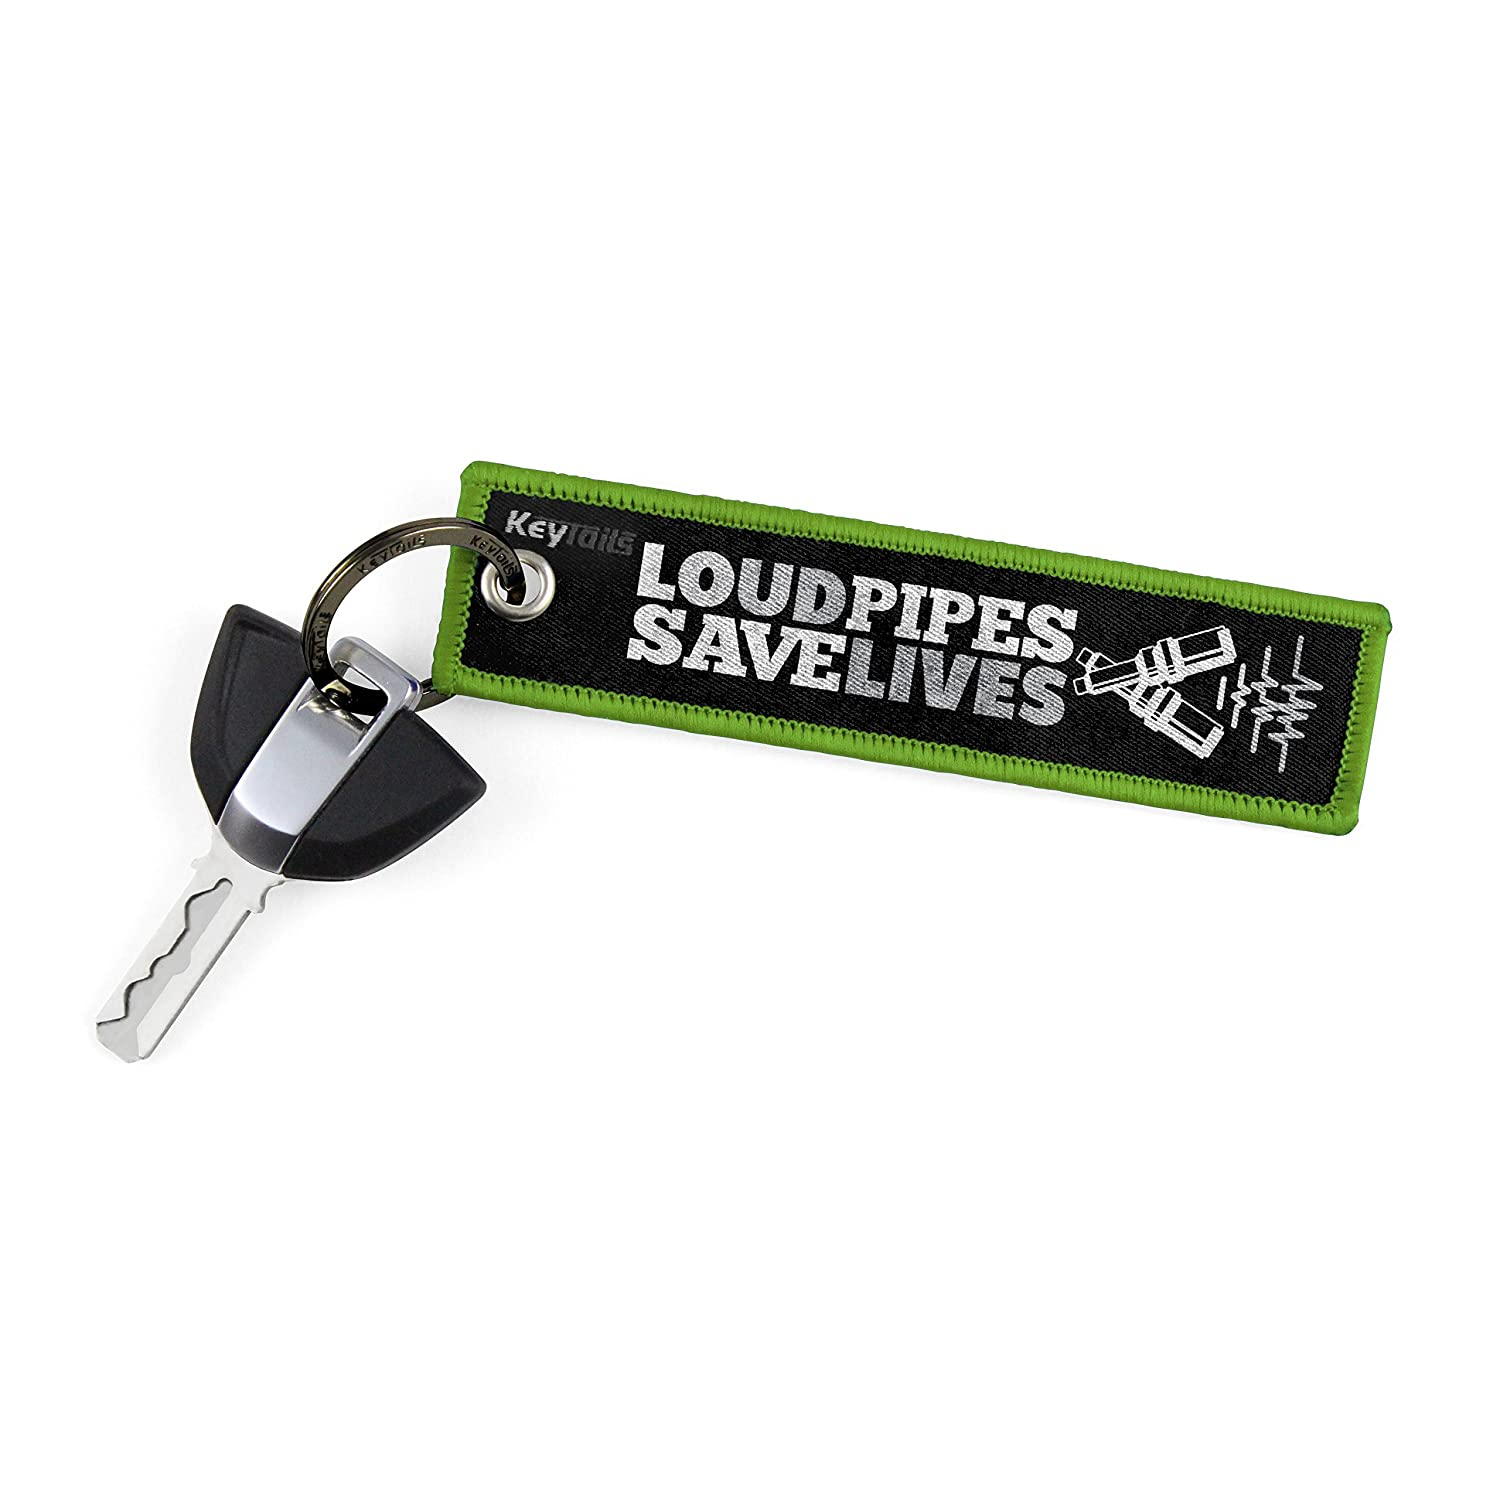 Premium Quality Key Tag for Motorcycle KEYTAILS Keychains Loud Pipes, Save Lives UTV ATV Scooter